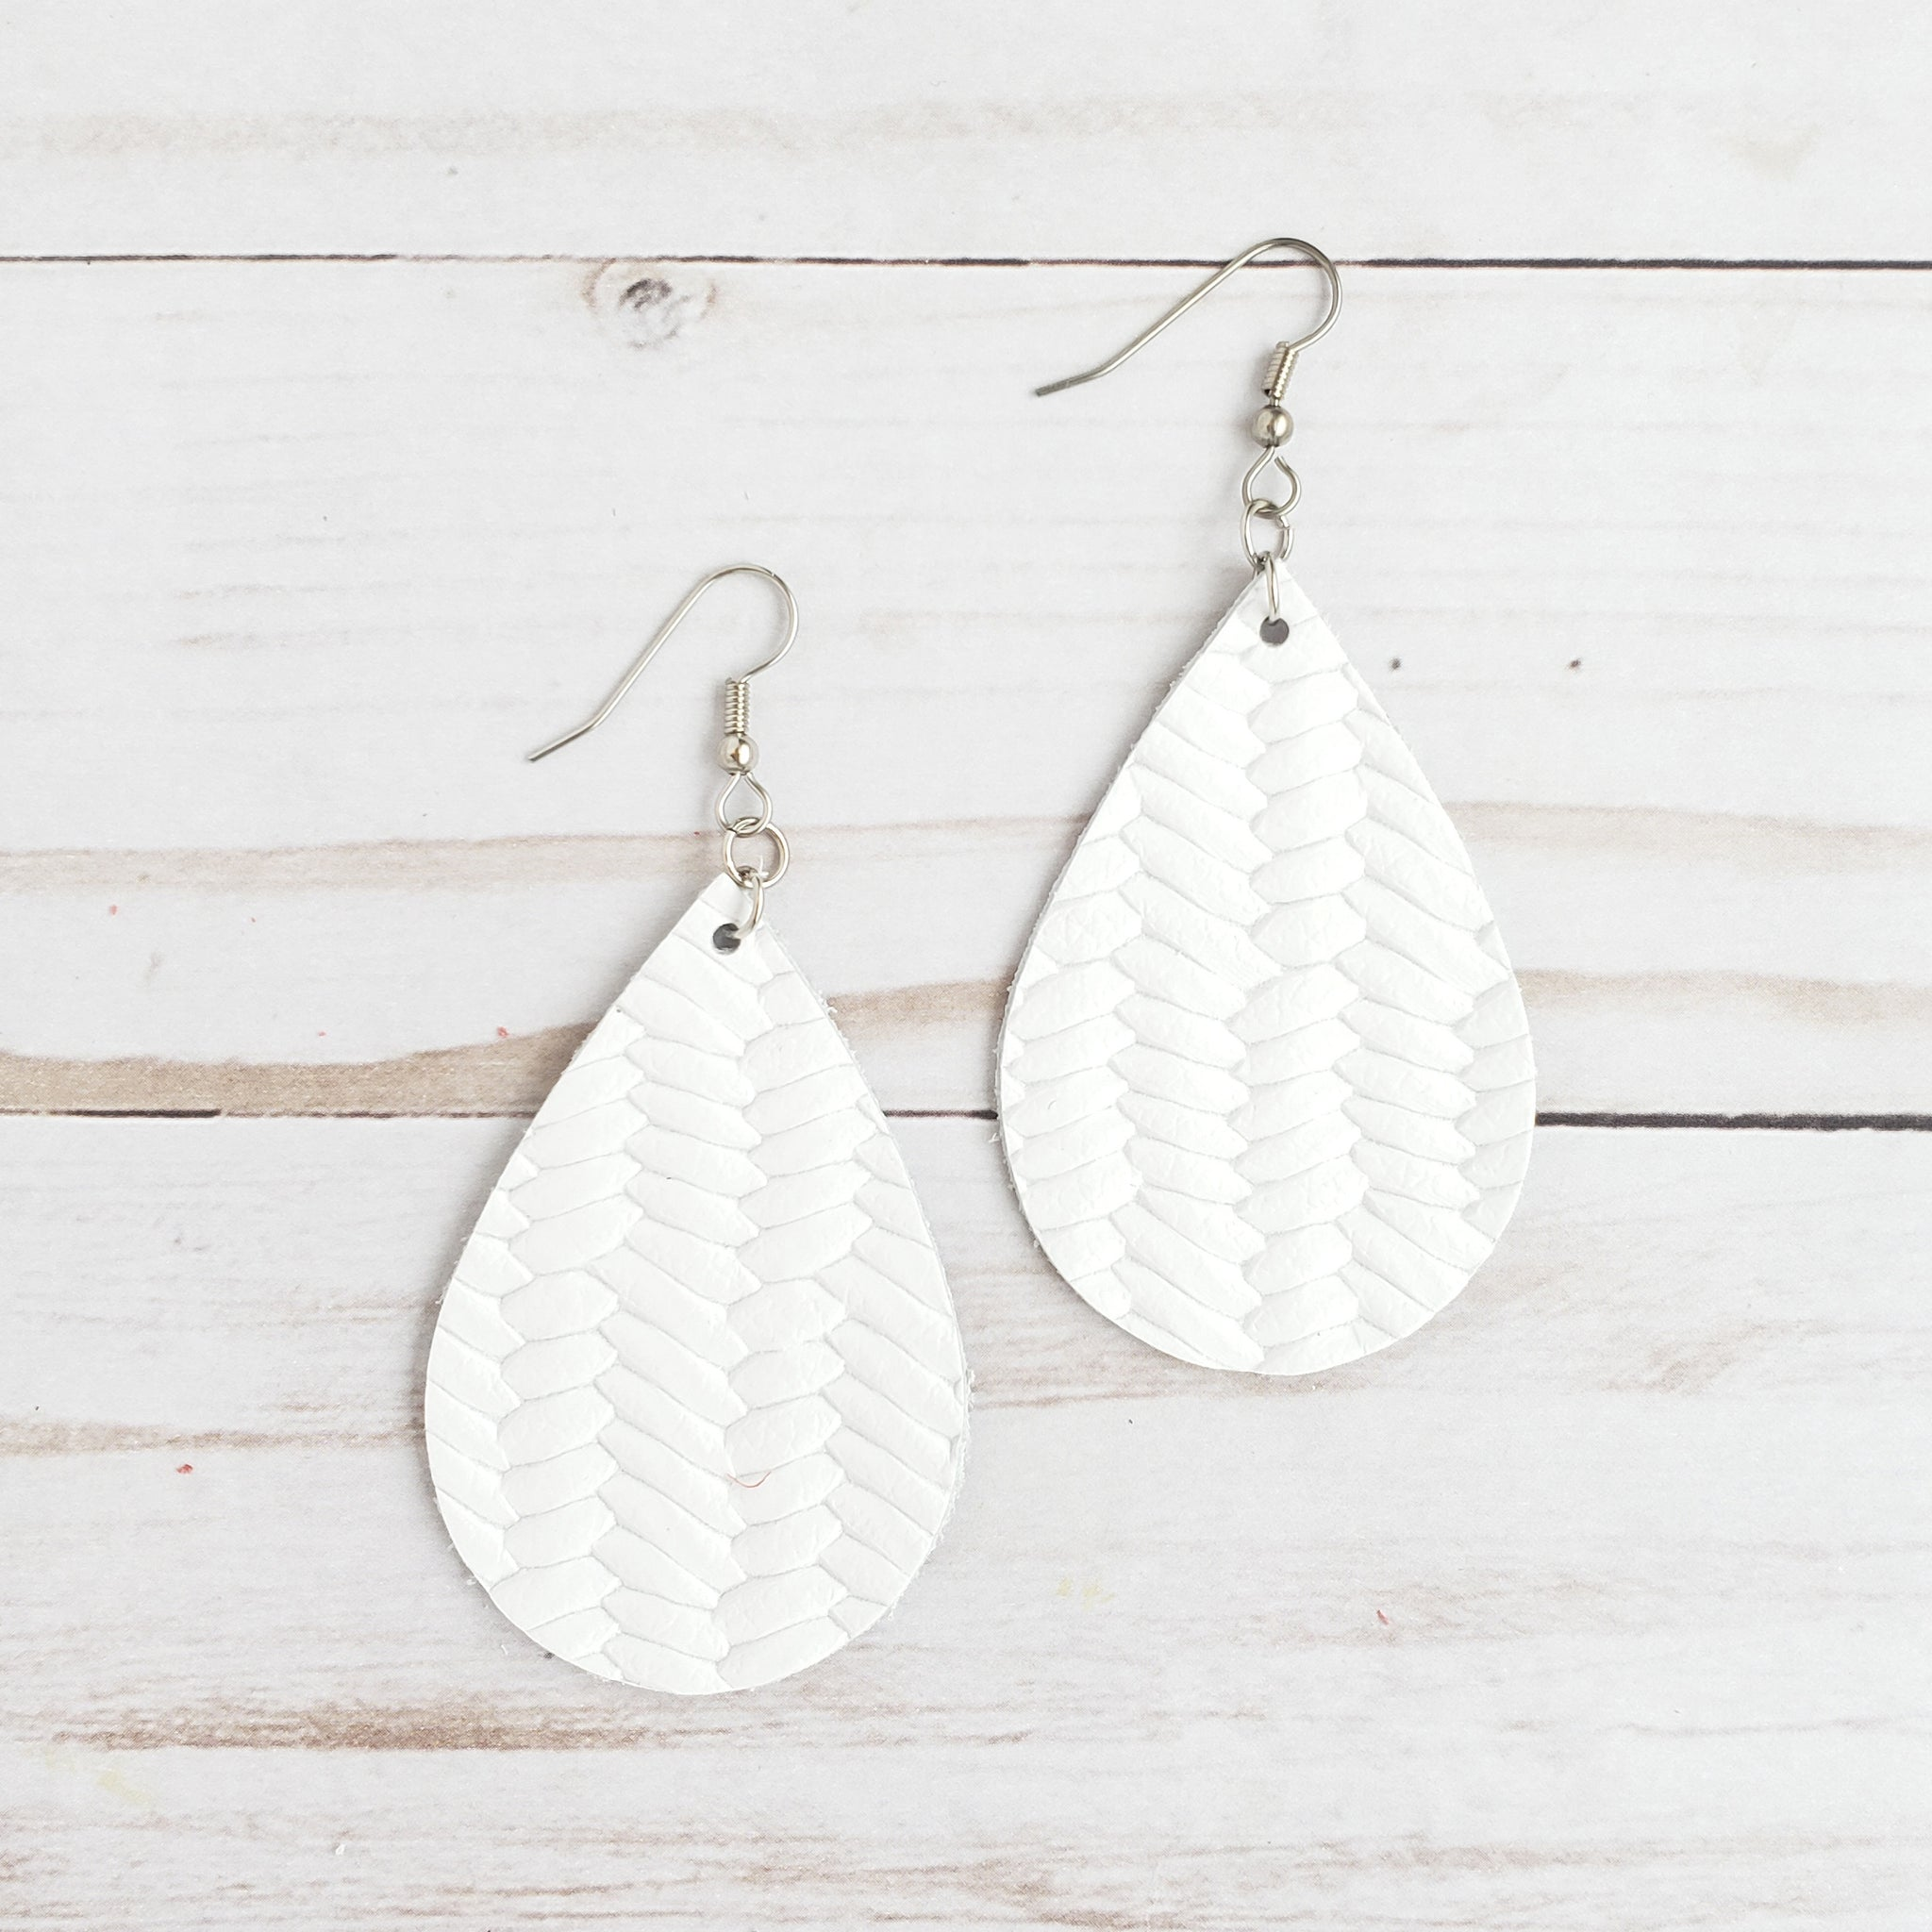 White Fish Tail Braid Leather Drop Earrings